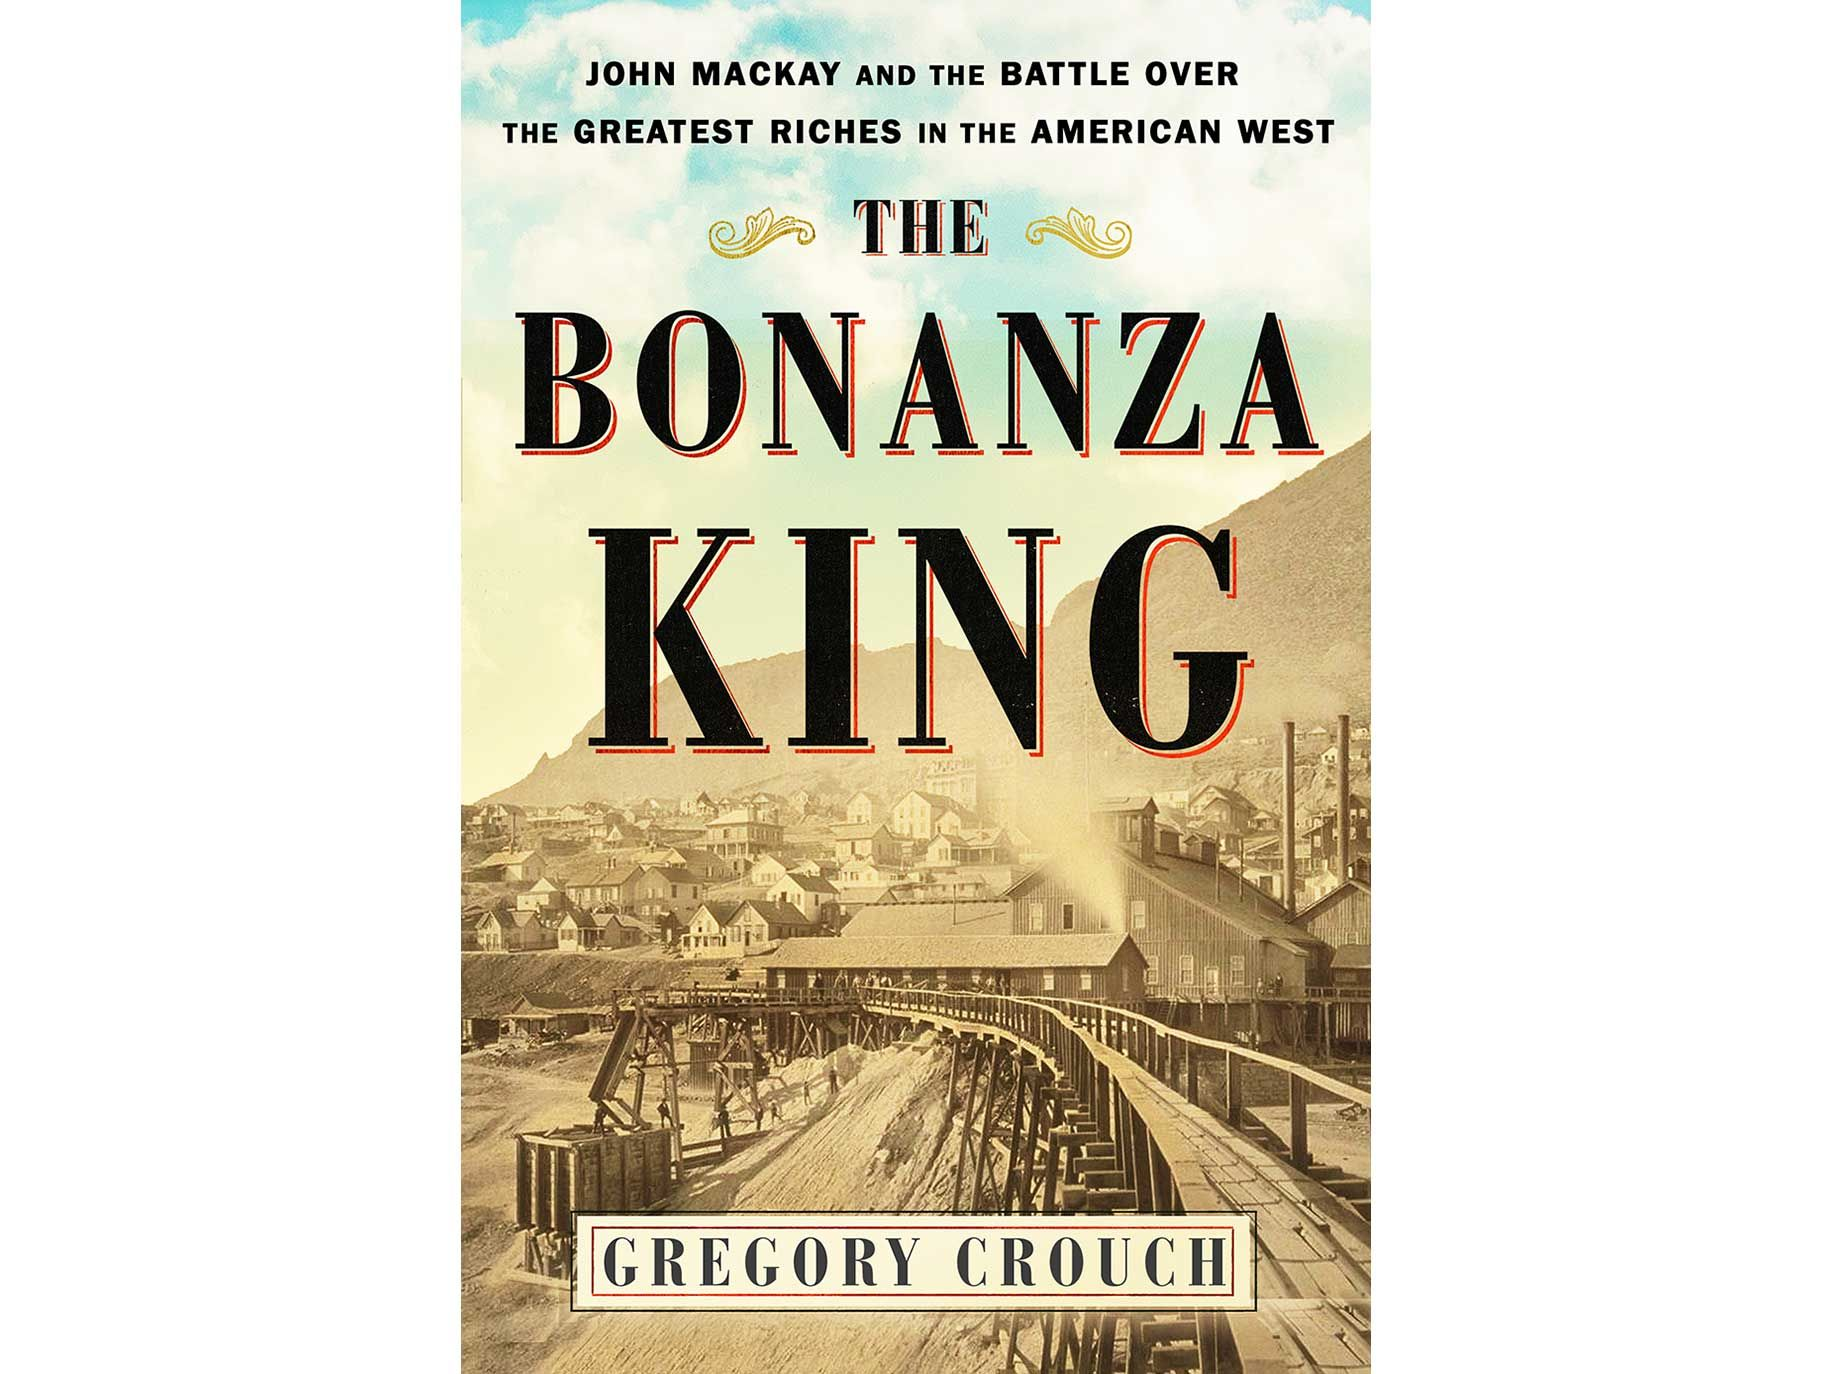 """The Bonanza King"" by Gregory Crouch, Scribner, 2018, 480 pages, $30."